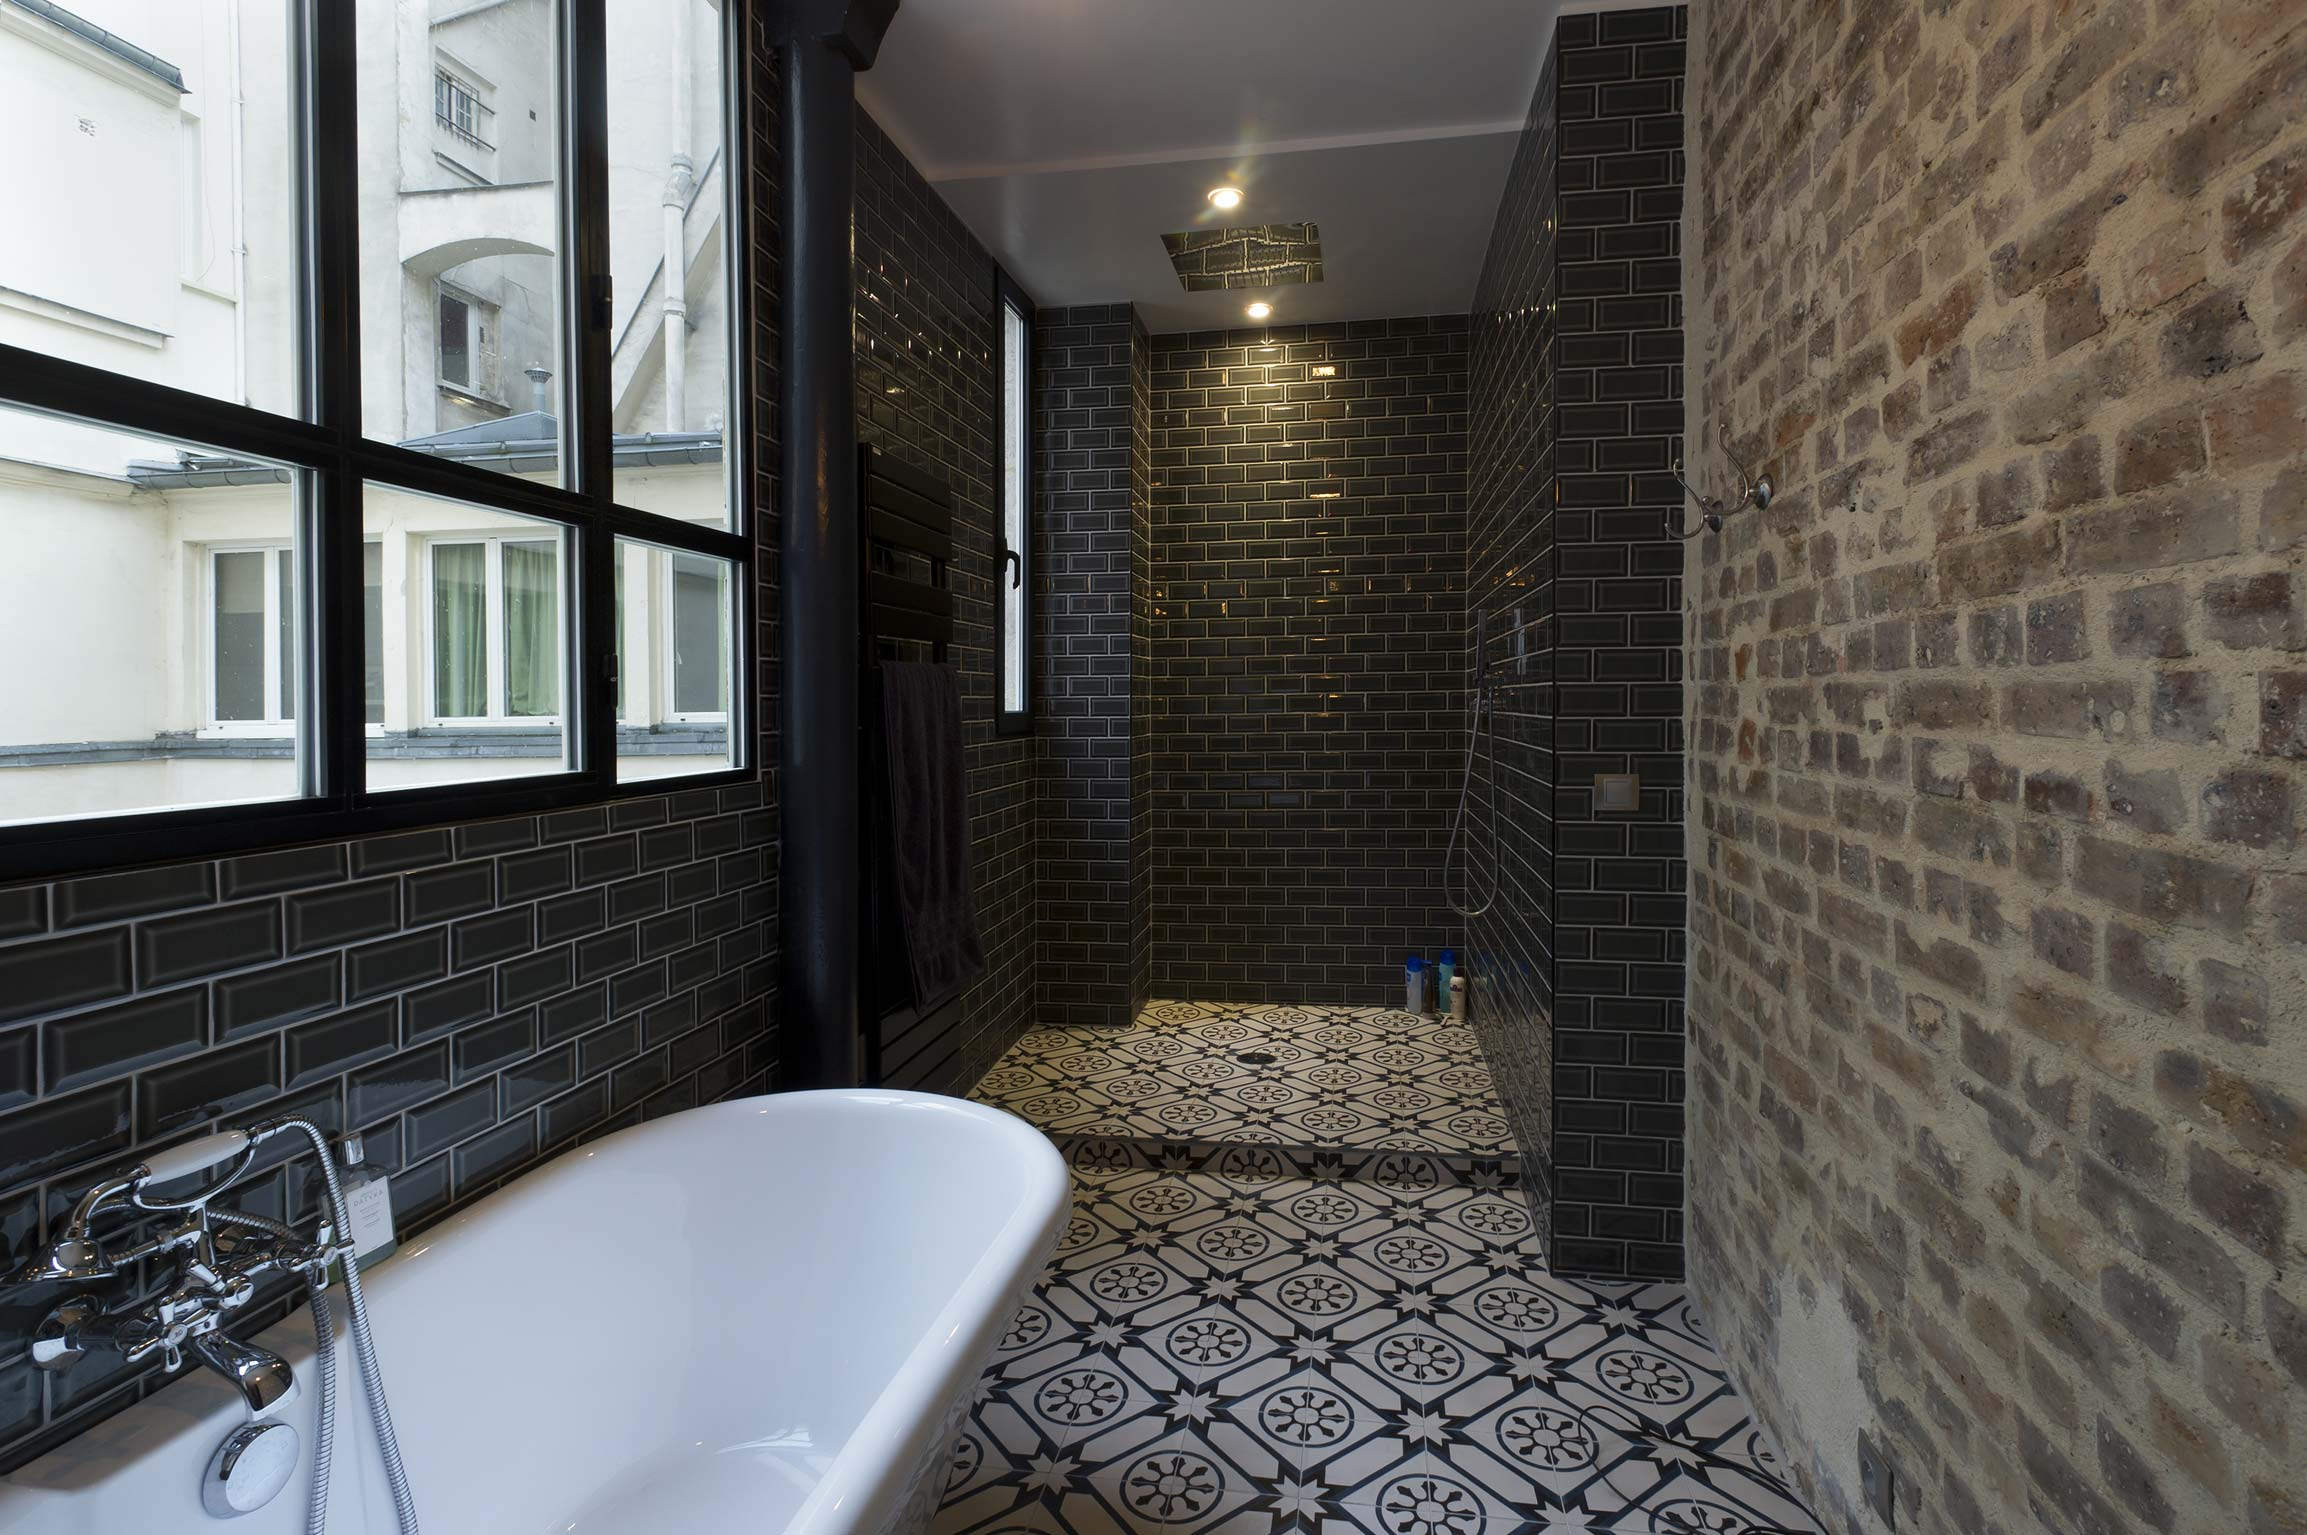 Douche l 39 italienne en carreau de ciment for Carreaux mur salle de bain